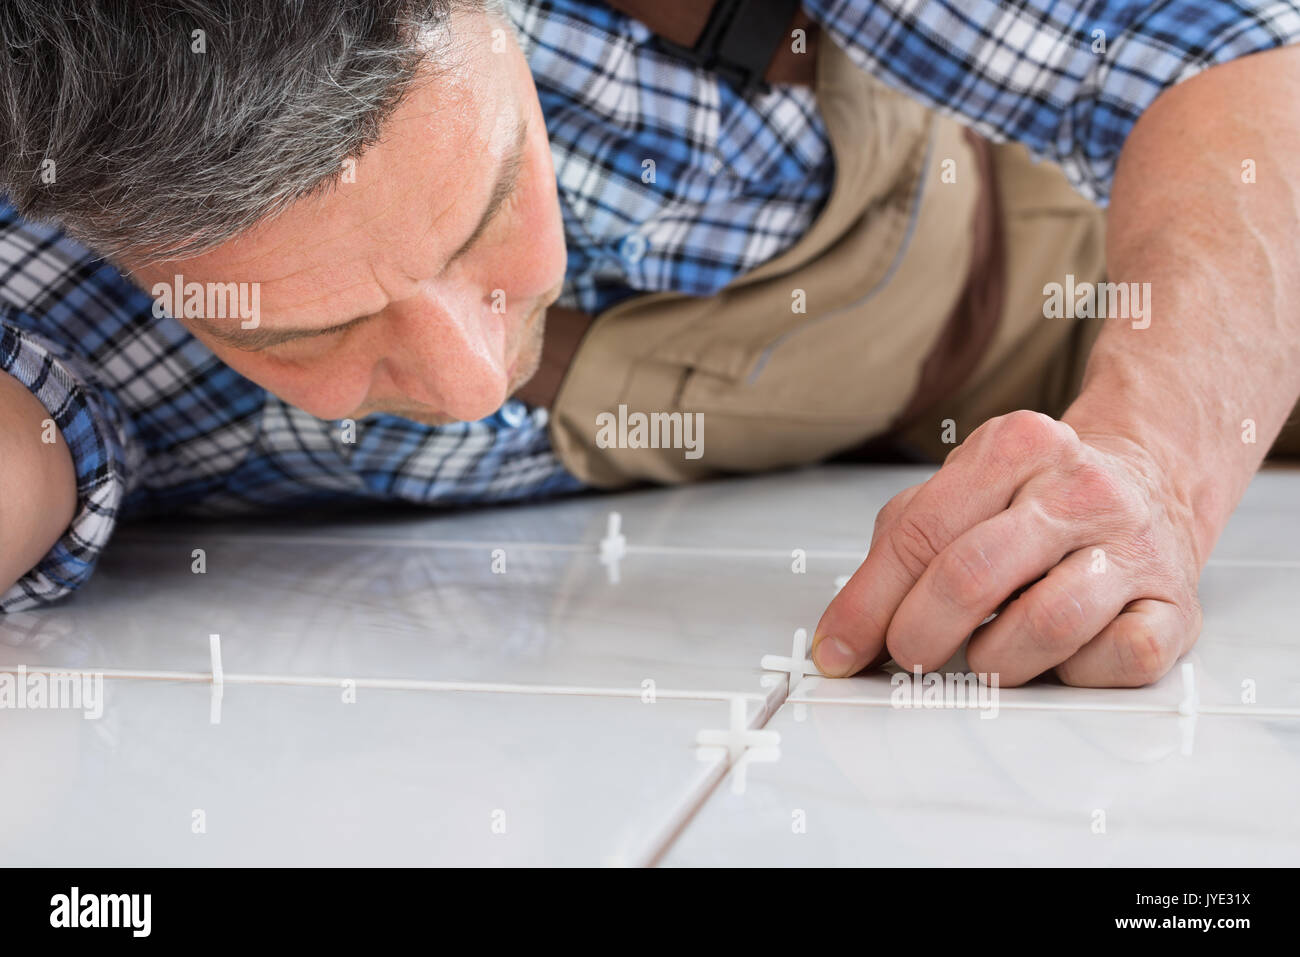 Close-up Of A Handyman Lying On Floor Placing Spacers Between Tiles - Stock Image